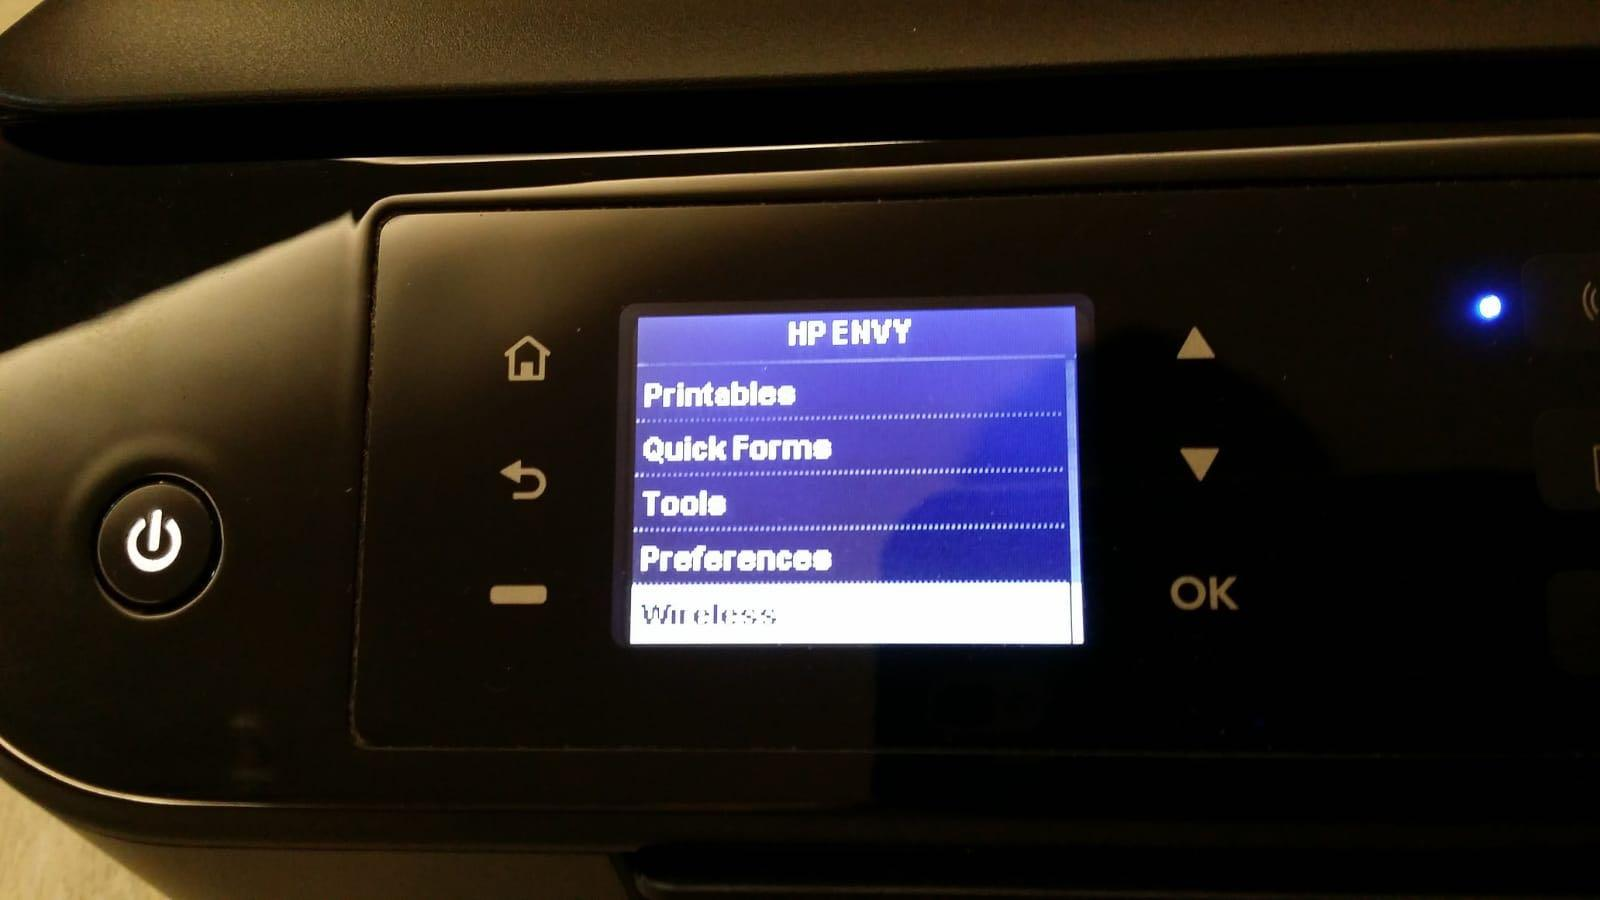 HP ENVY 4500 Wireless All-In-One Color Photo Printer, Print